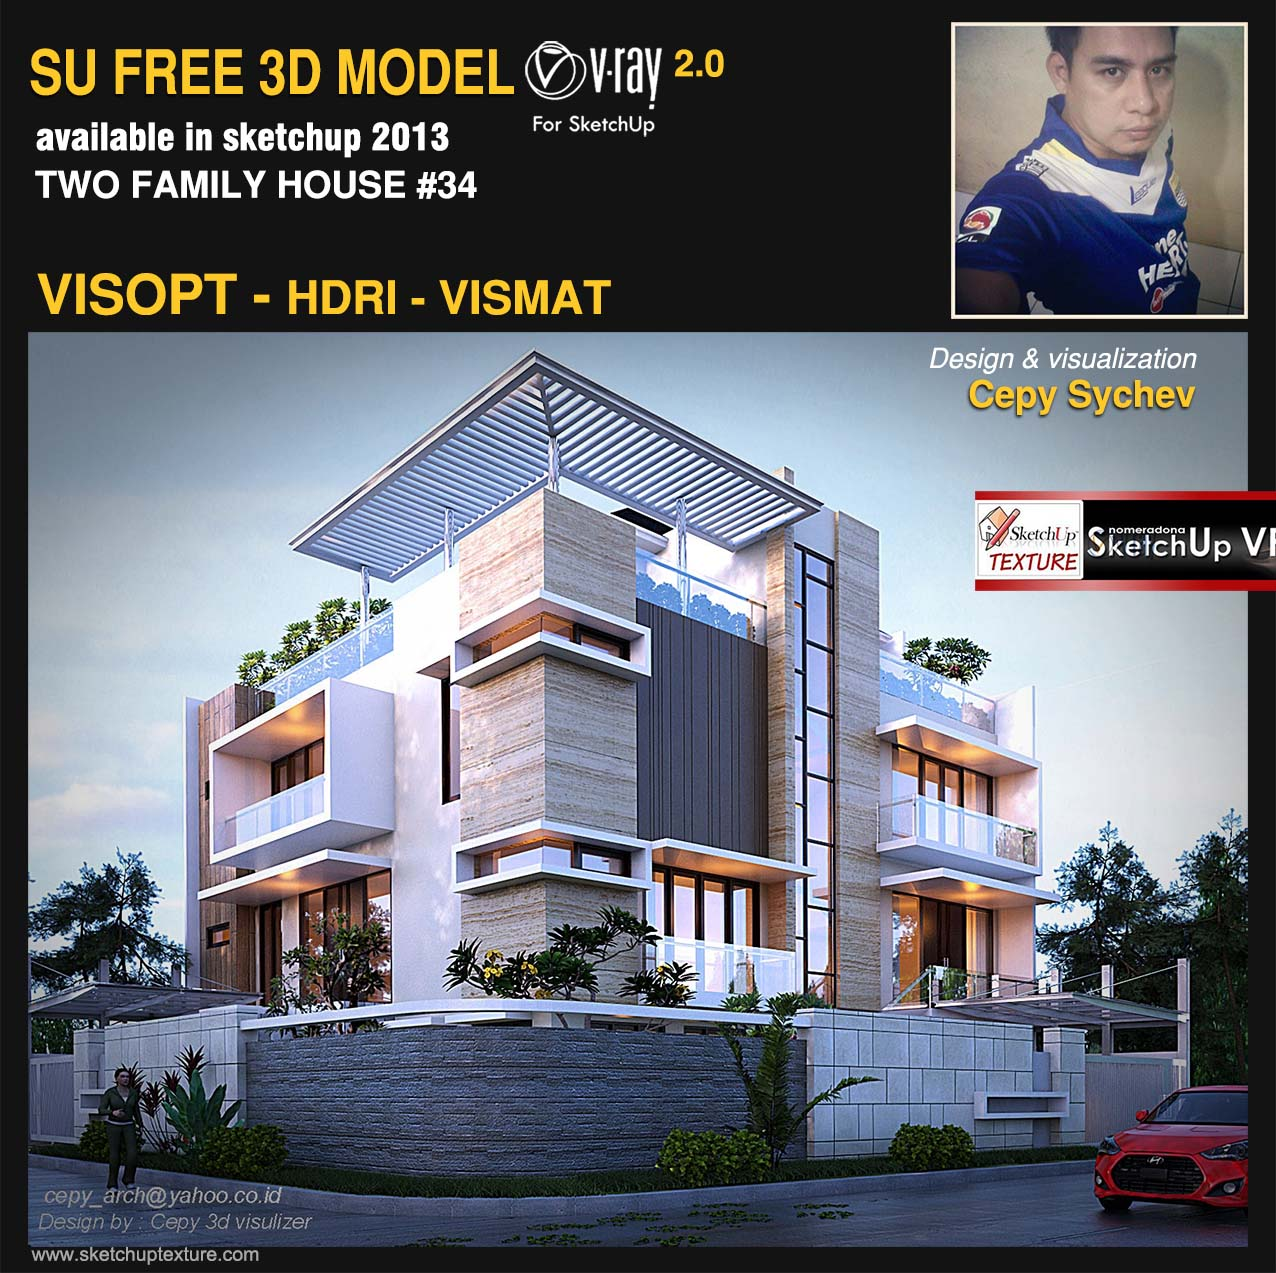 free sketchup model two family house #34 visopt and vray render